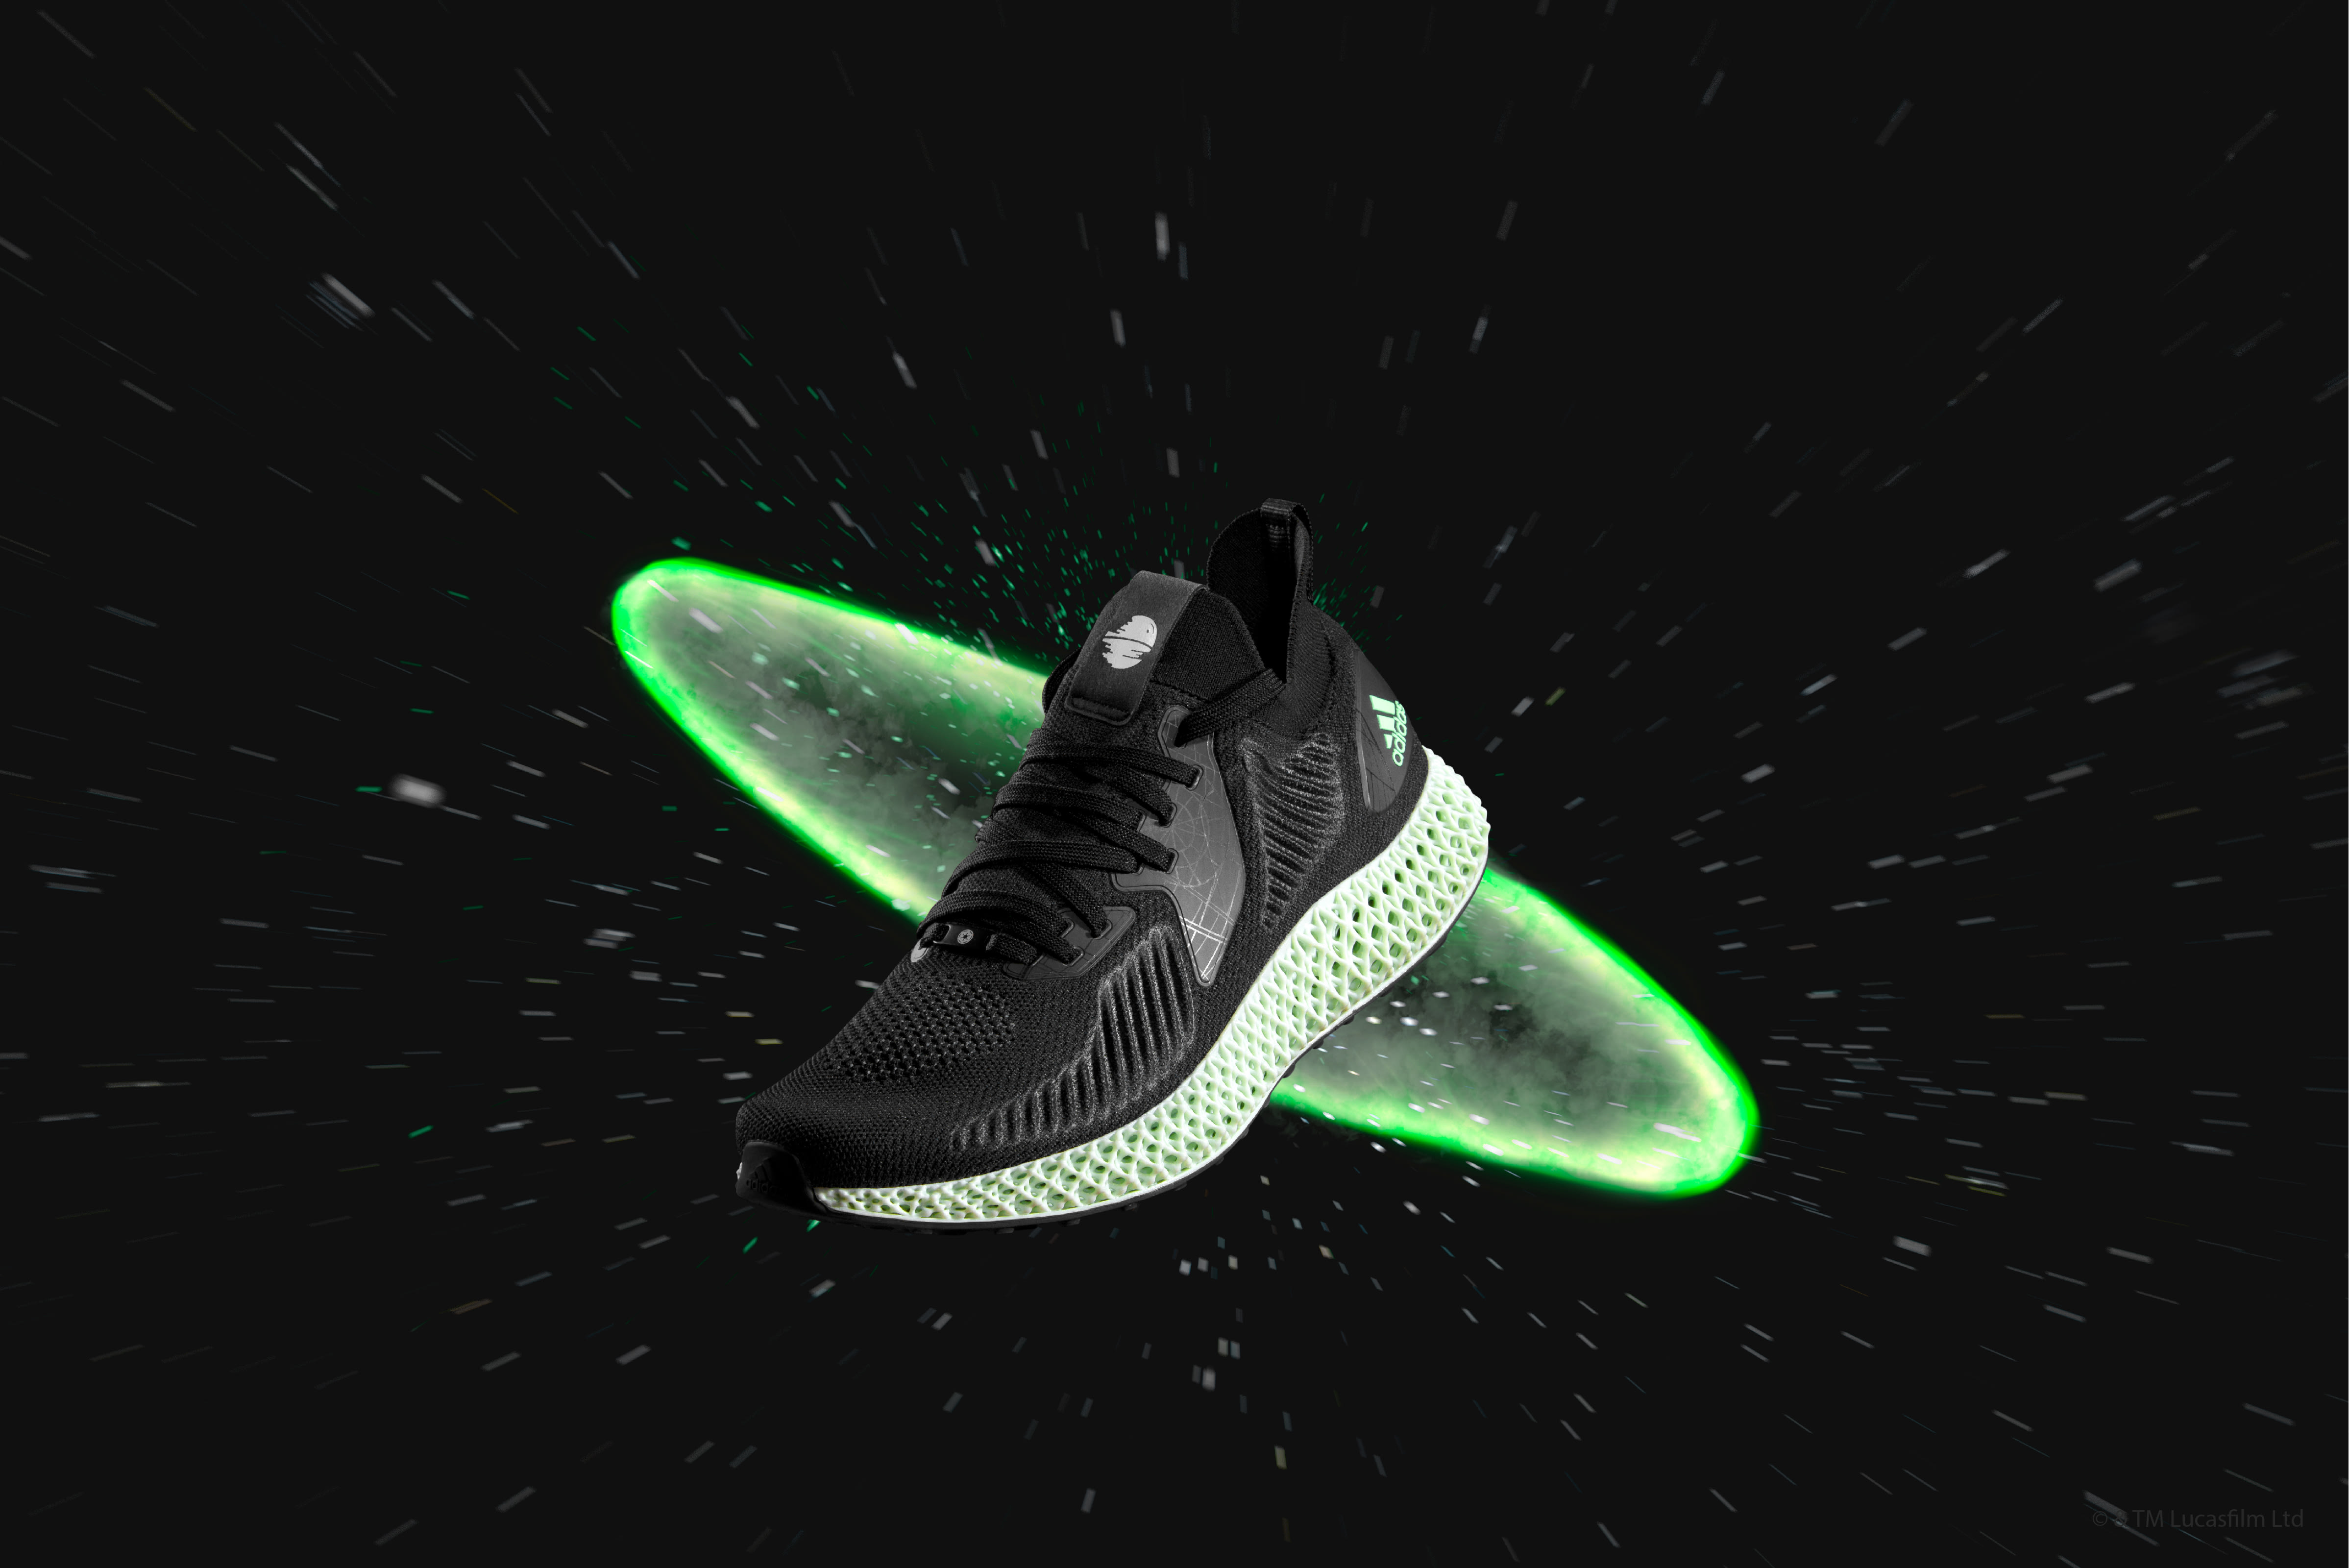 star-wars-adidas-space-battle-pack-alphaedge-4d